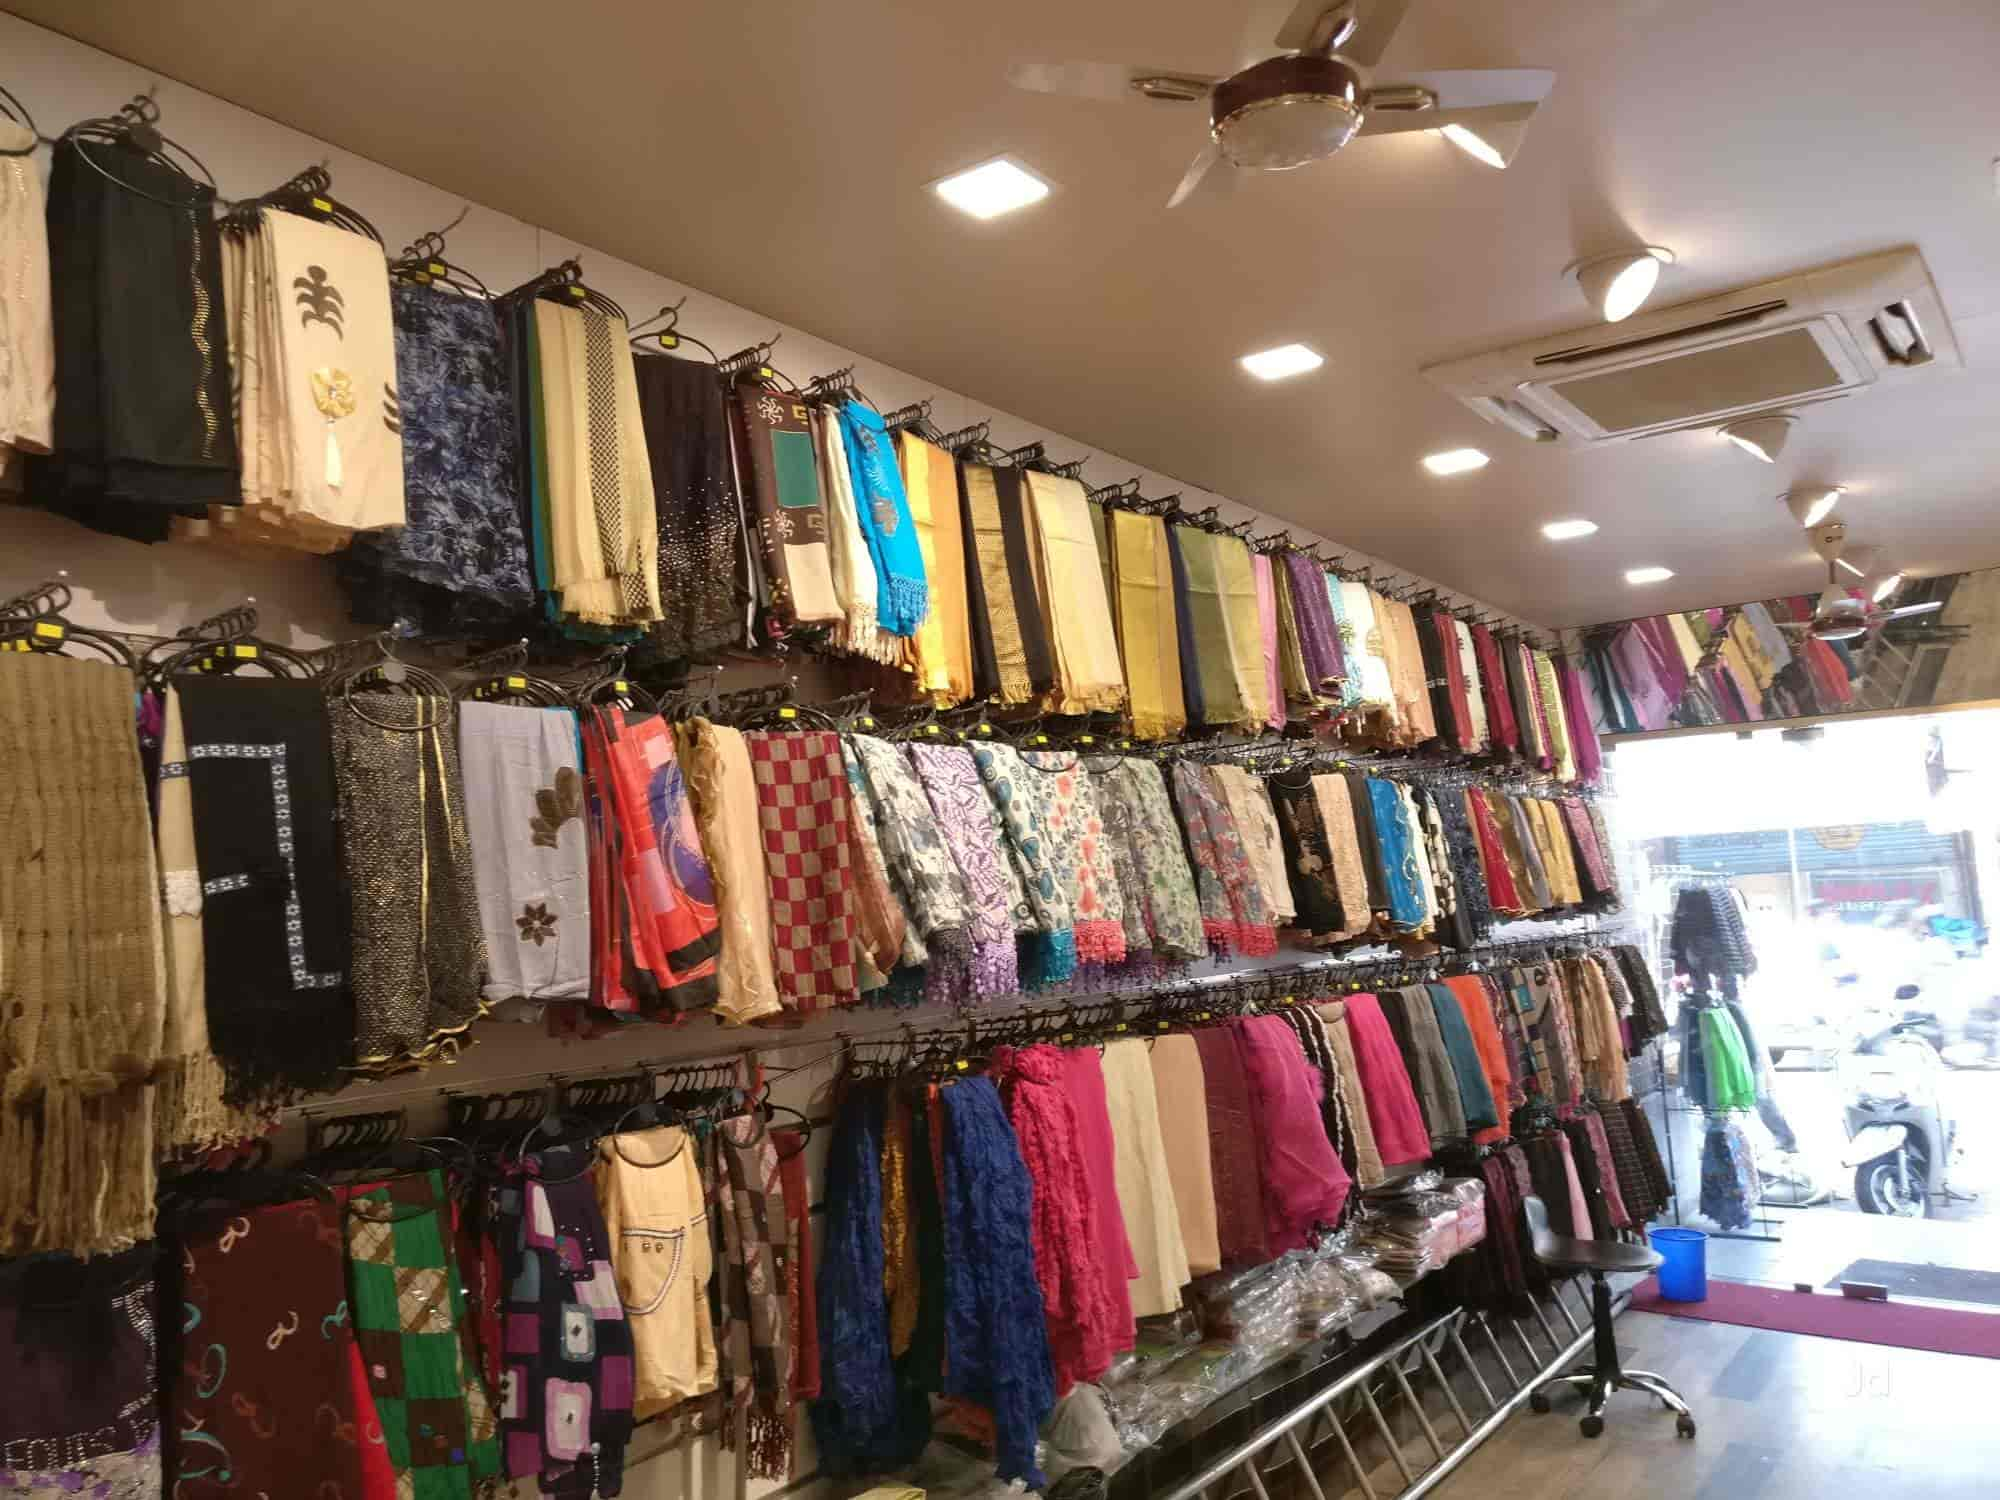 Fashion House Photos  Masjid Bunder  Indore  Pictures   Images     Fashion House Photos  Masjid Bunder  Indore  Pictures   Images Gallery    Justdial